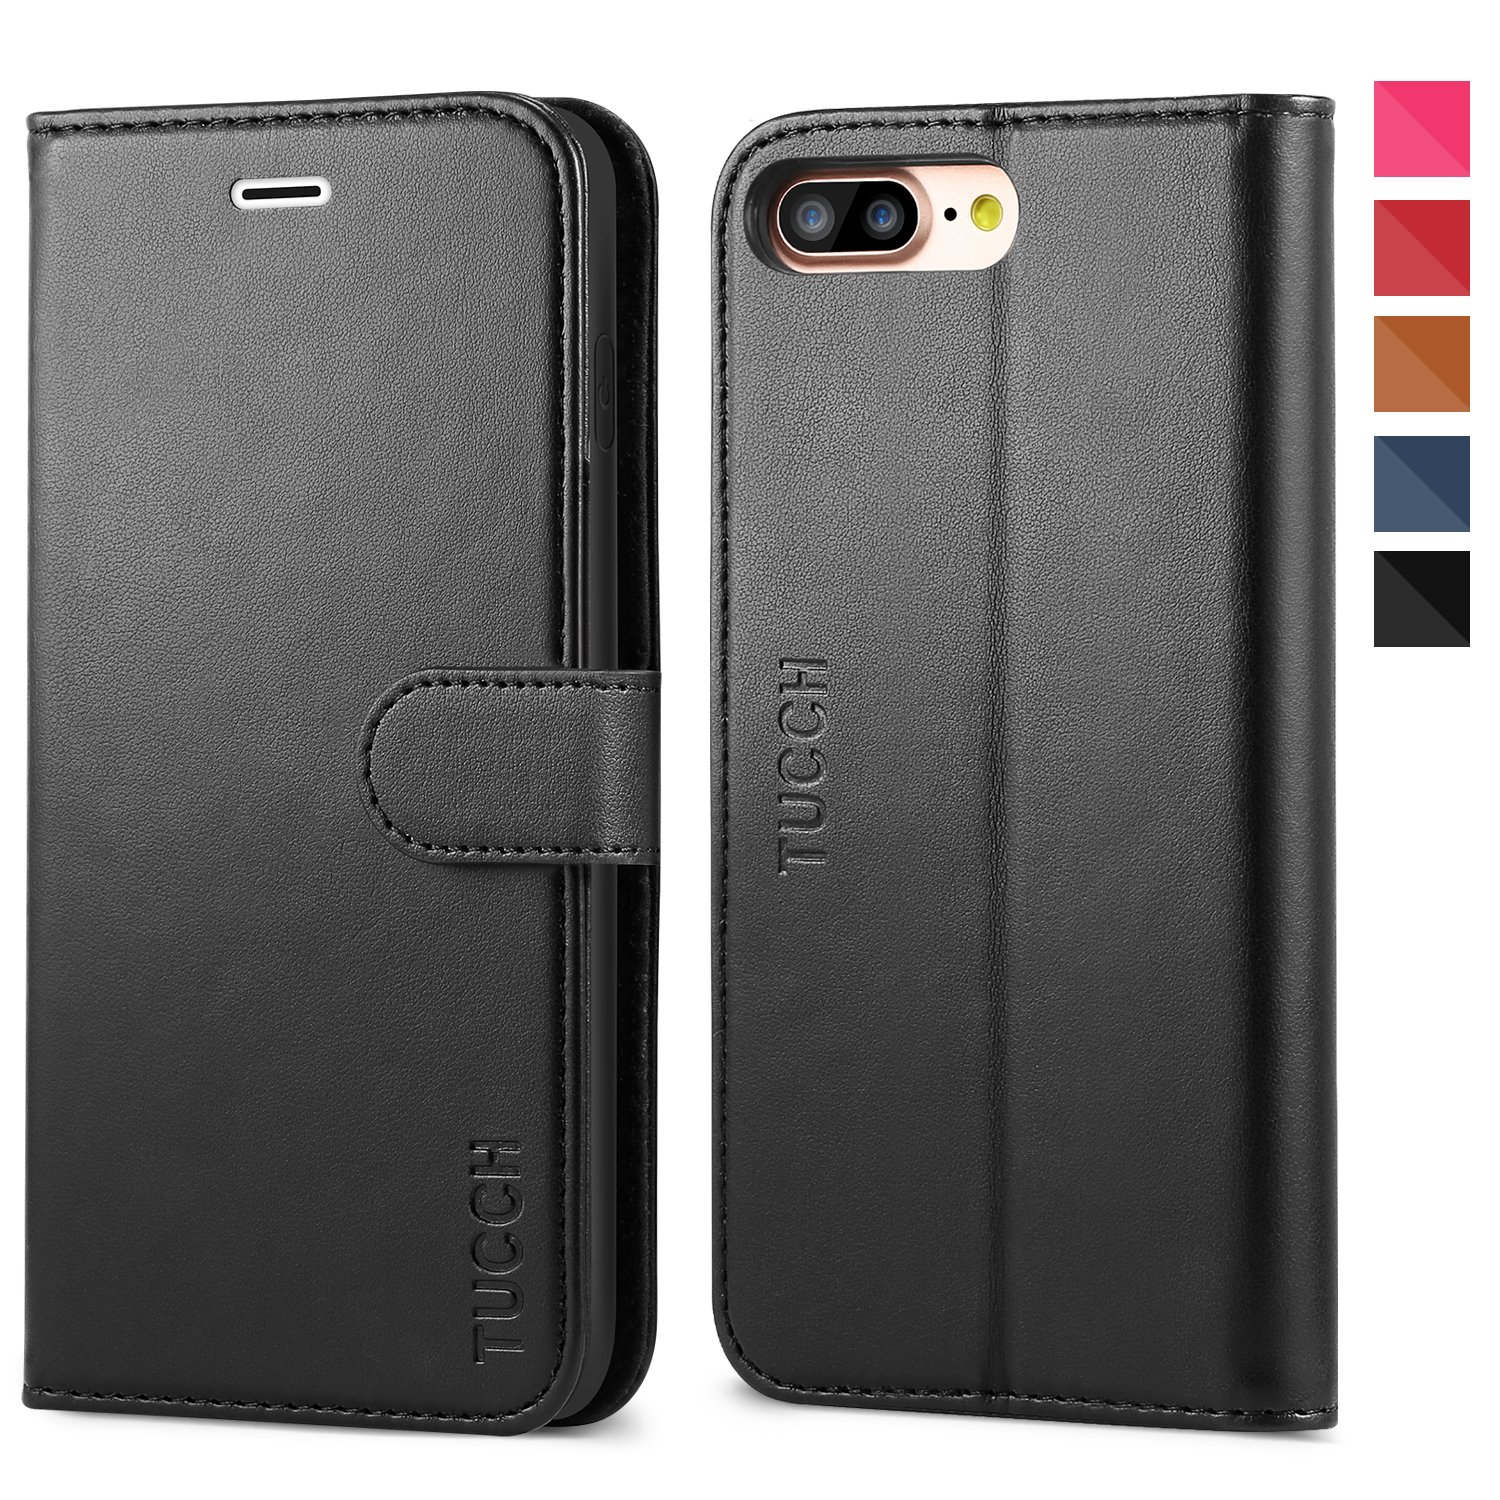 reputable site cf6c1 dc1a9 iPhone 8 Plus Wallet Case, iPhone 7 Plus Case, TUCCH Premium PU Leather  Flip Folio Case with Card Slot, Stand Holder, Magnetic Closure [TPU  Shockproof ...